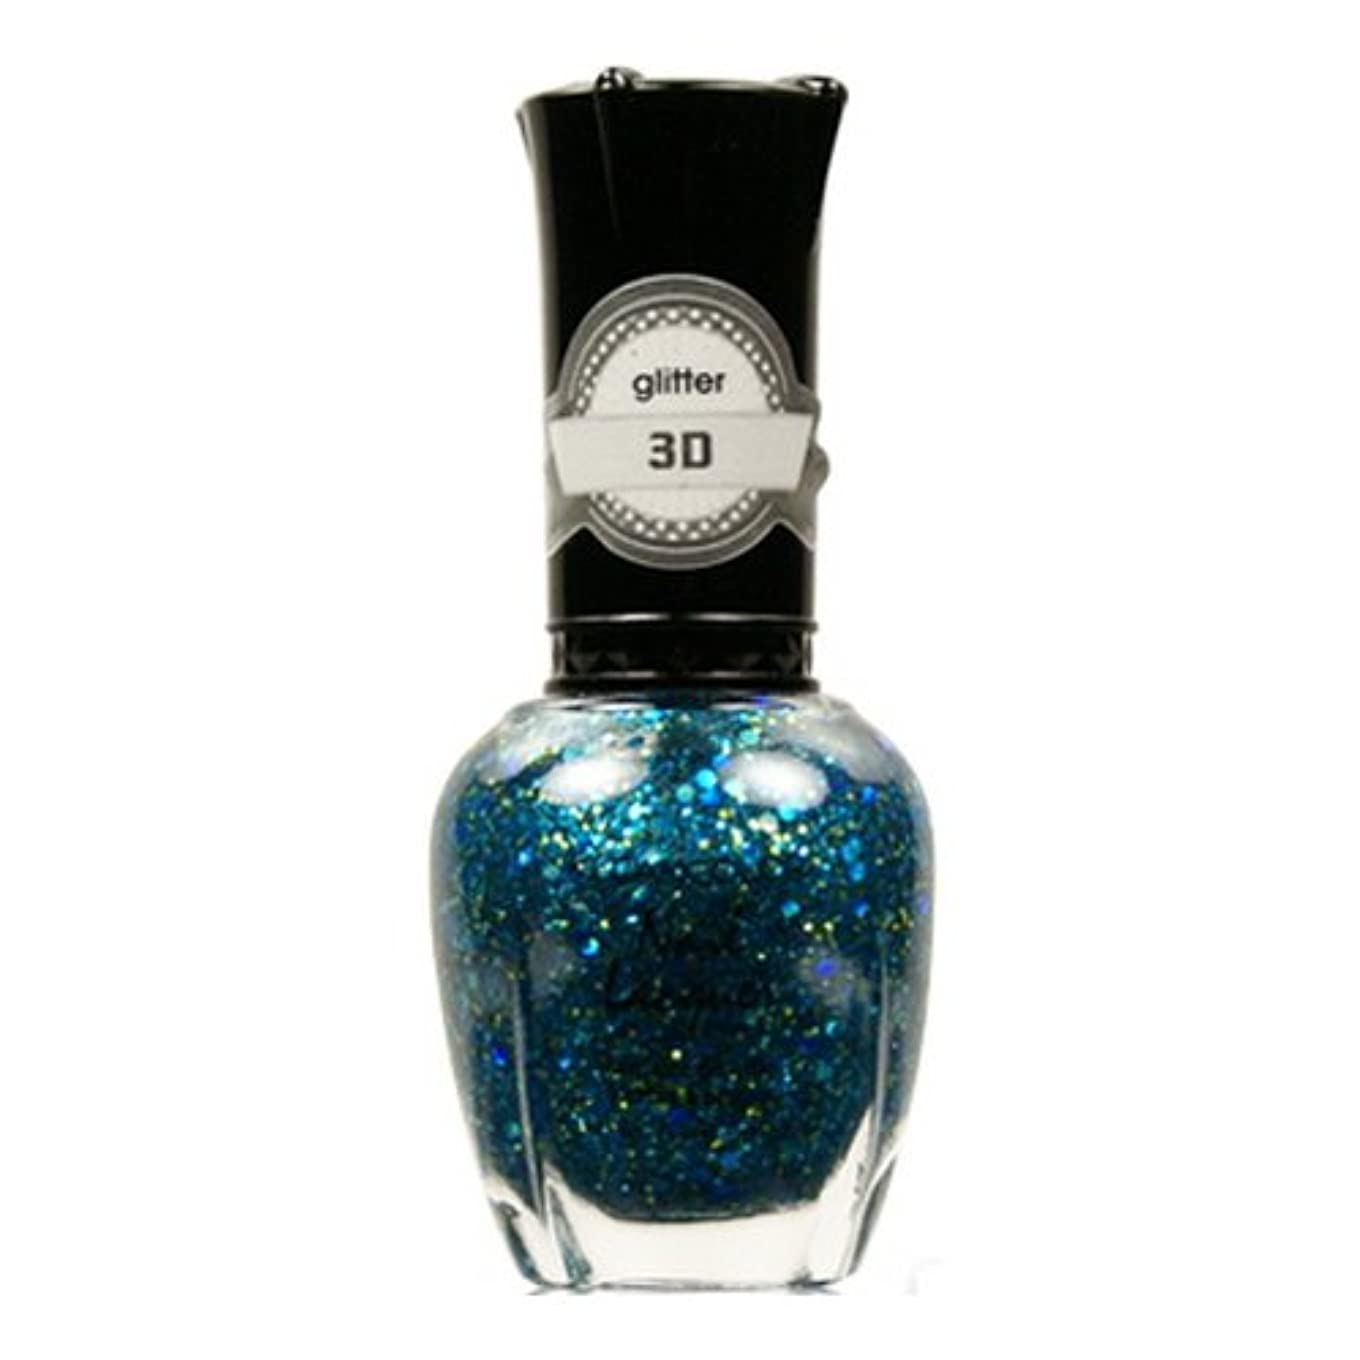 メトリック政治的同じKLEANCOLOR 3D Nail Lacquer - Luv U TEAL I Find Someone Better (並行輸入品)